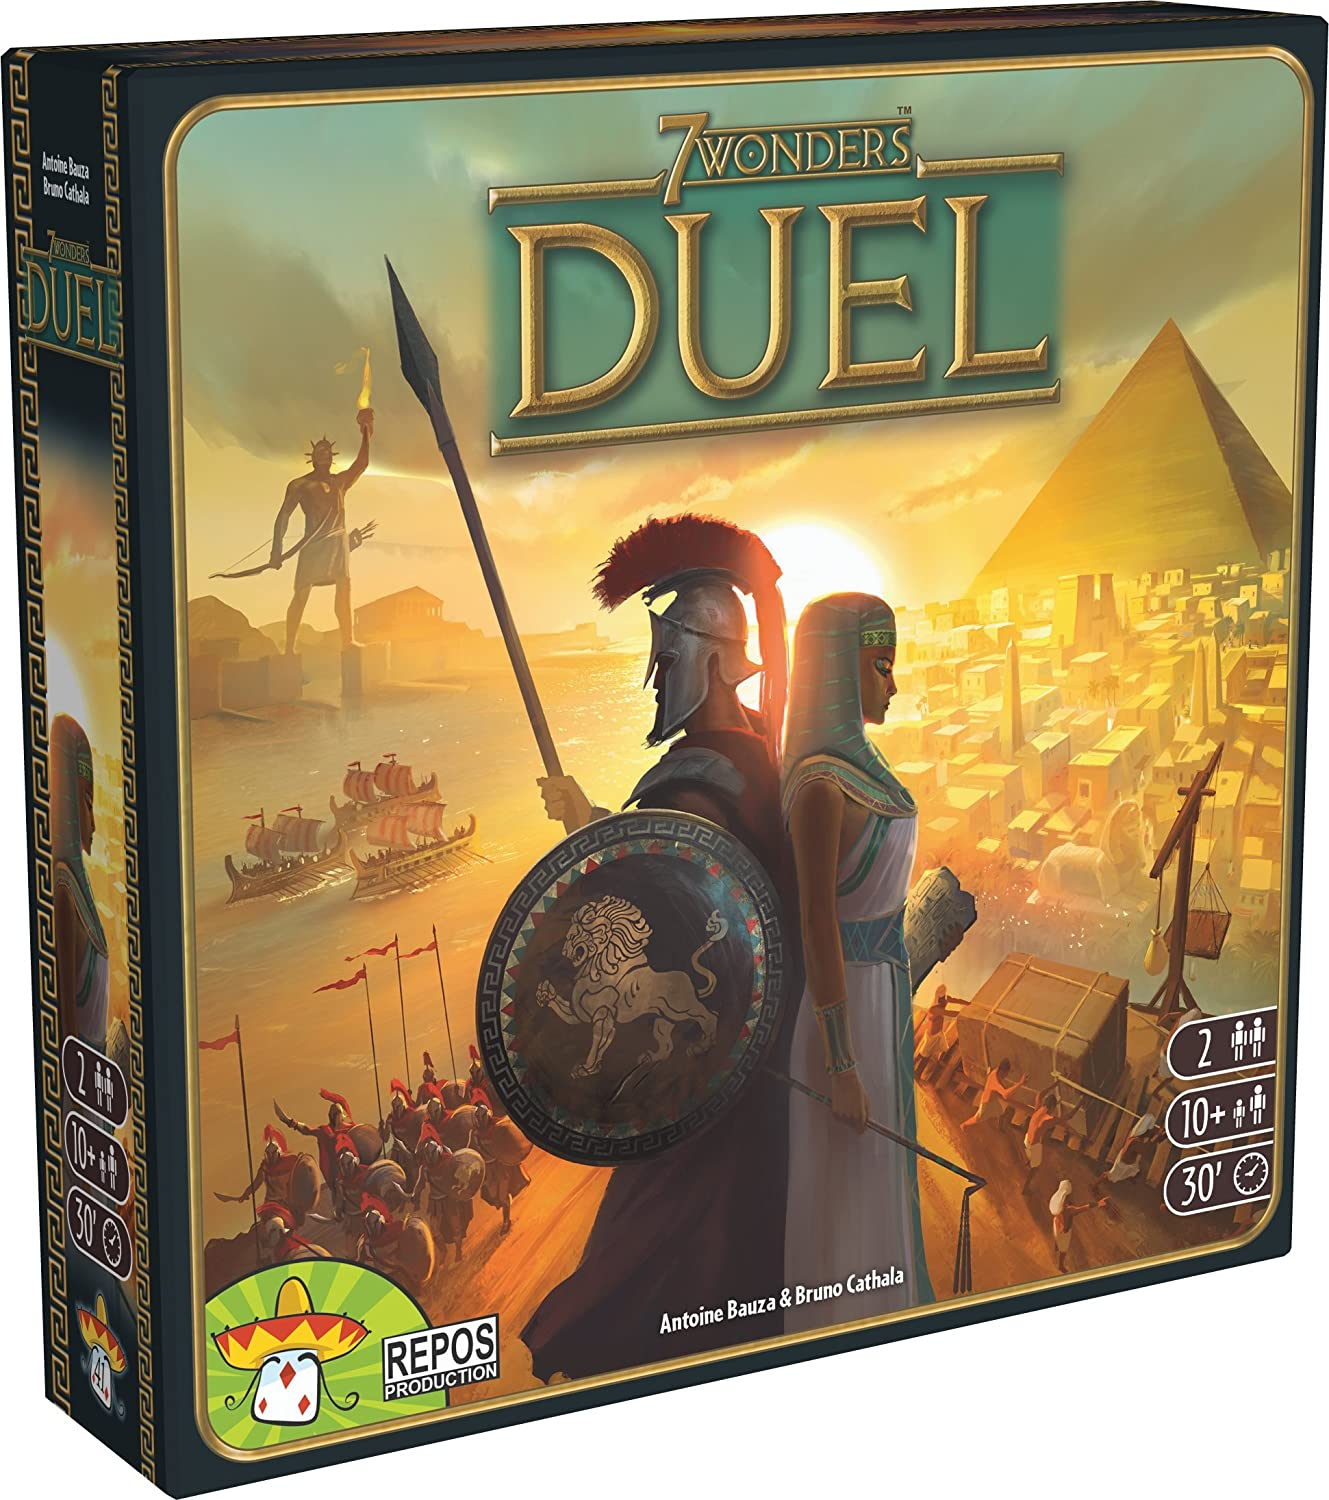 Asterion 8035 – 7 Wonders Duel, édition Italienne, Multicolore